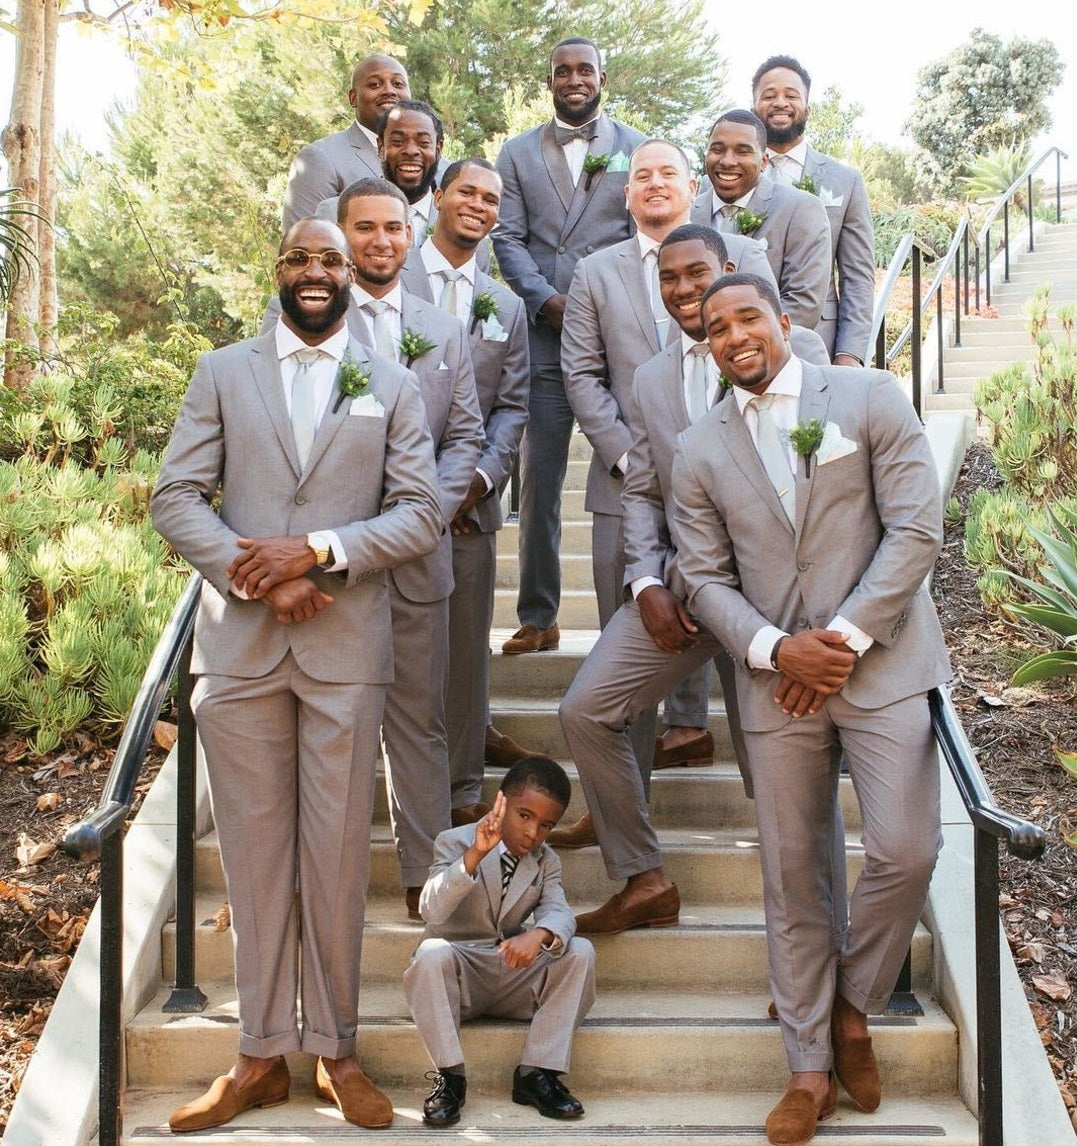 Kam Chancellor suits up his squad with The Groomsman Suit